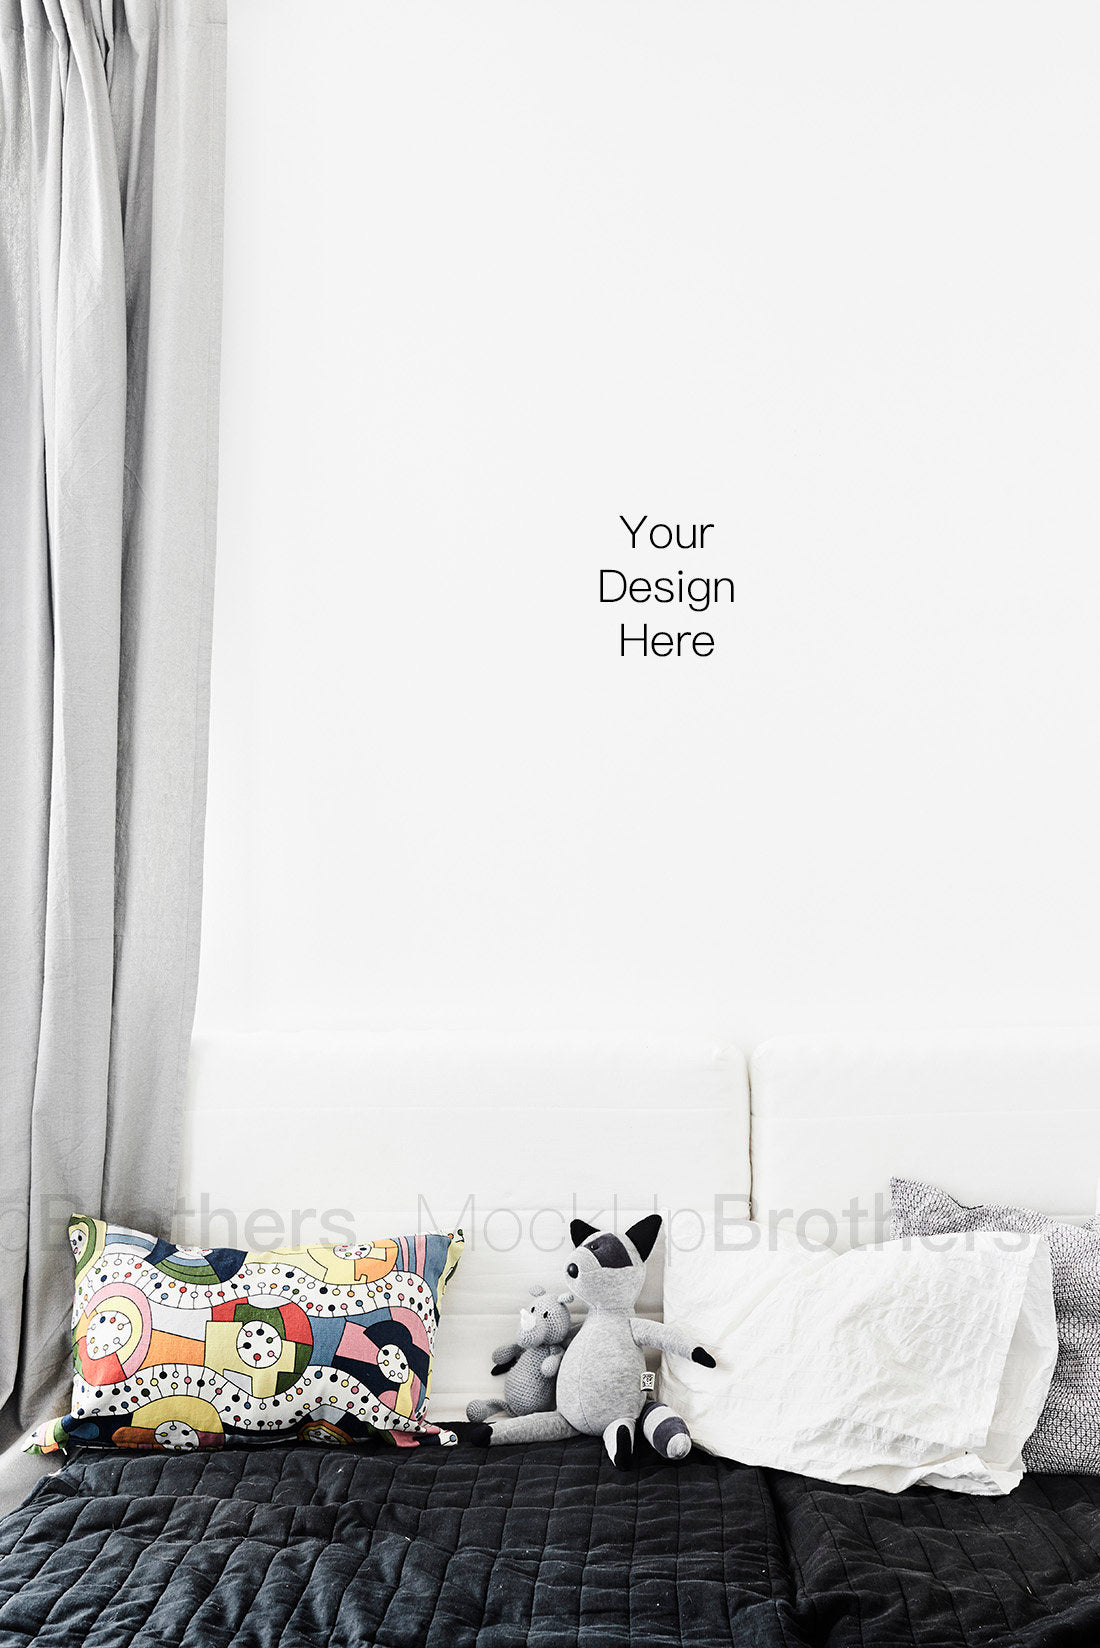 Kids room stock photography by Mock up Brothers